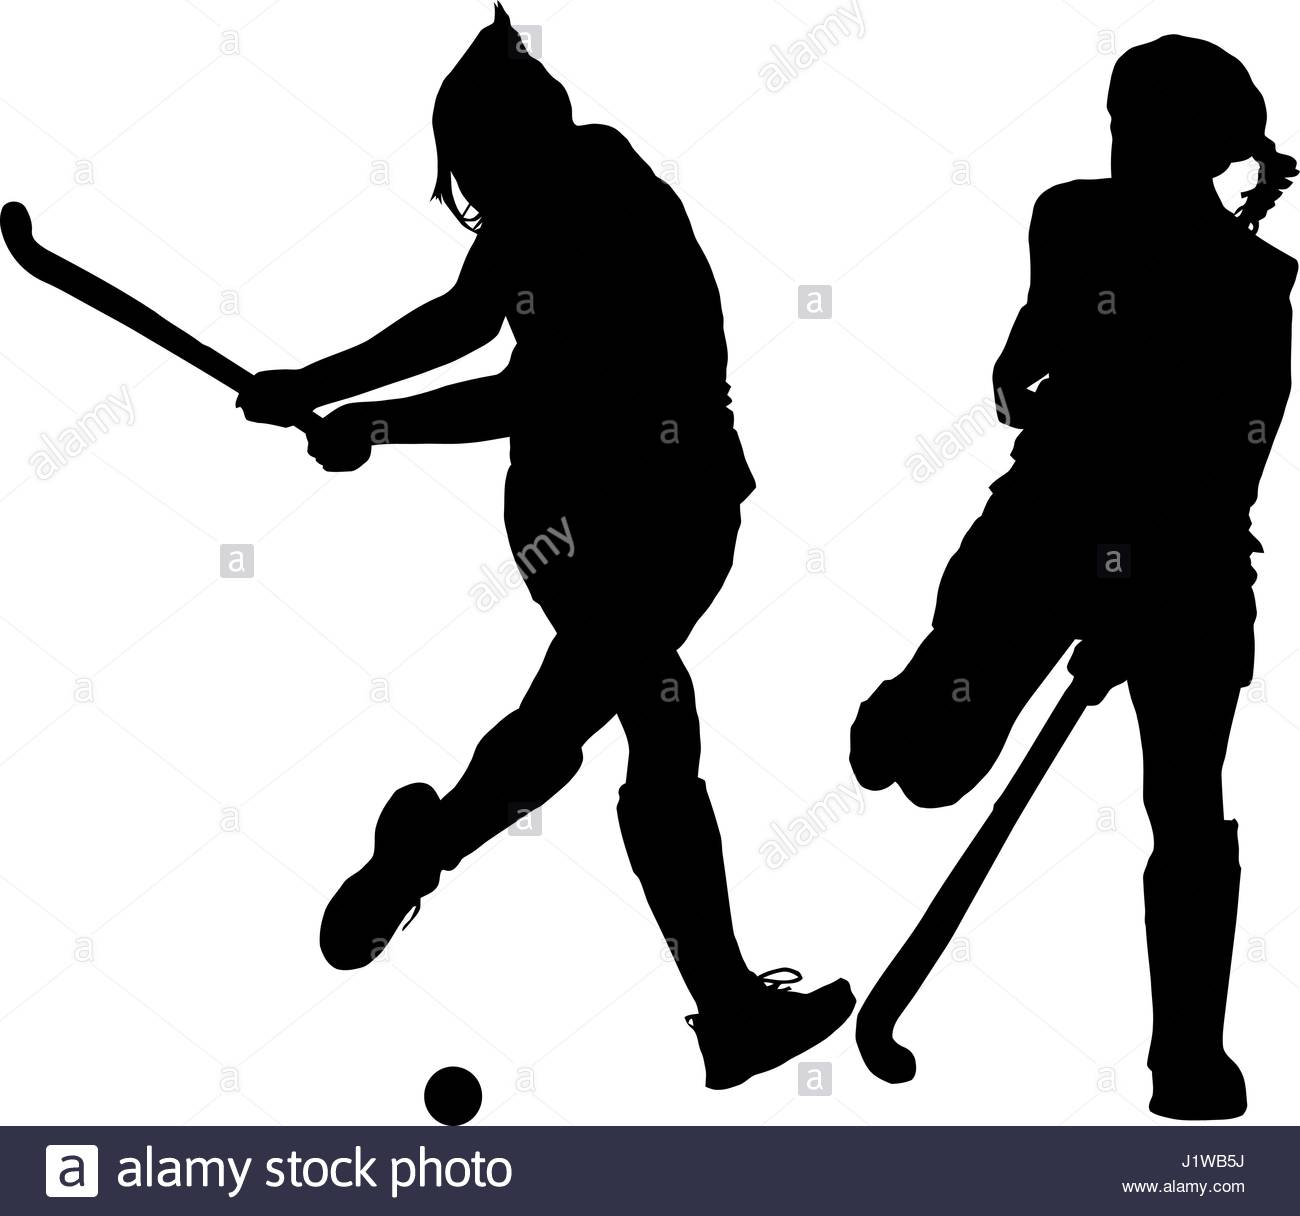 1300x1216 Black On White Silhouette Of Girls Ladies Hockey Players Hitting